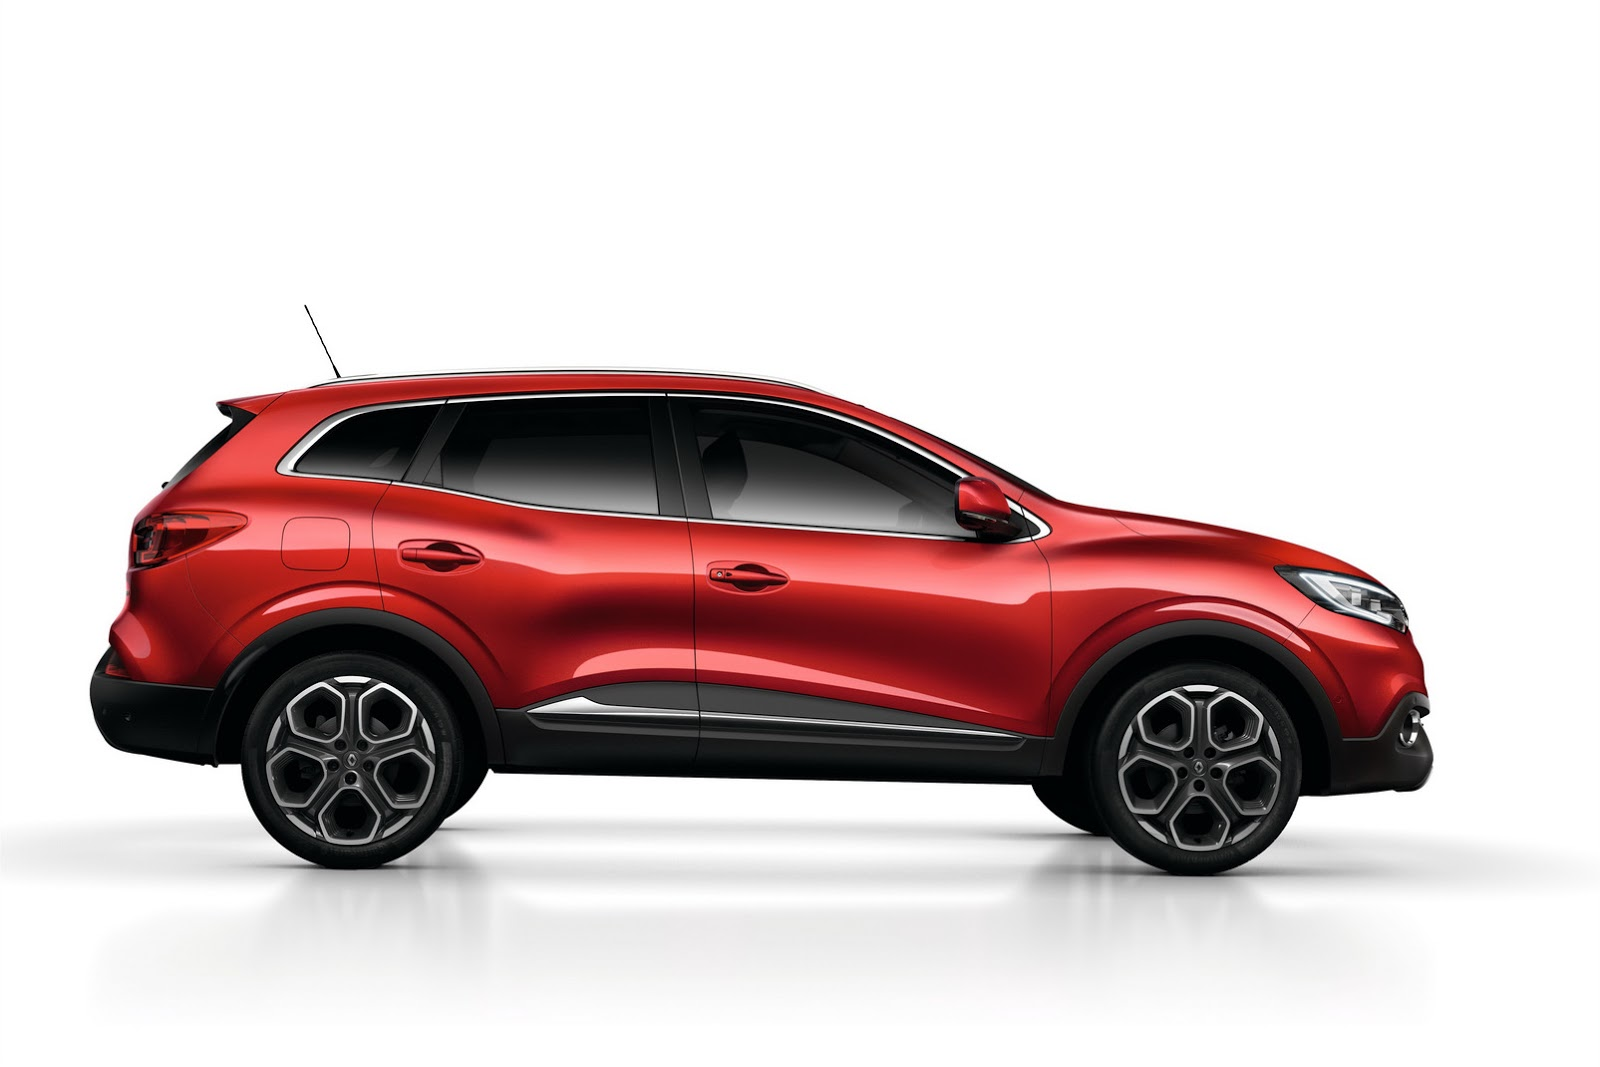 Fuel Trophy Wheels >> Renault Kadjar Price Announced for Europe - autoevolution